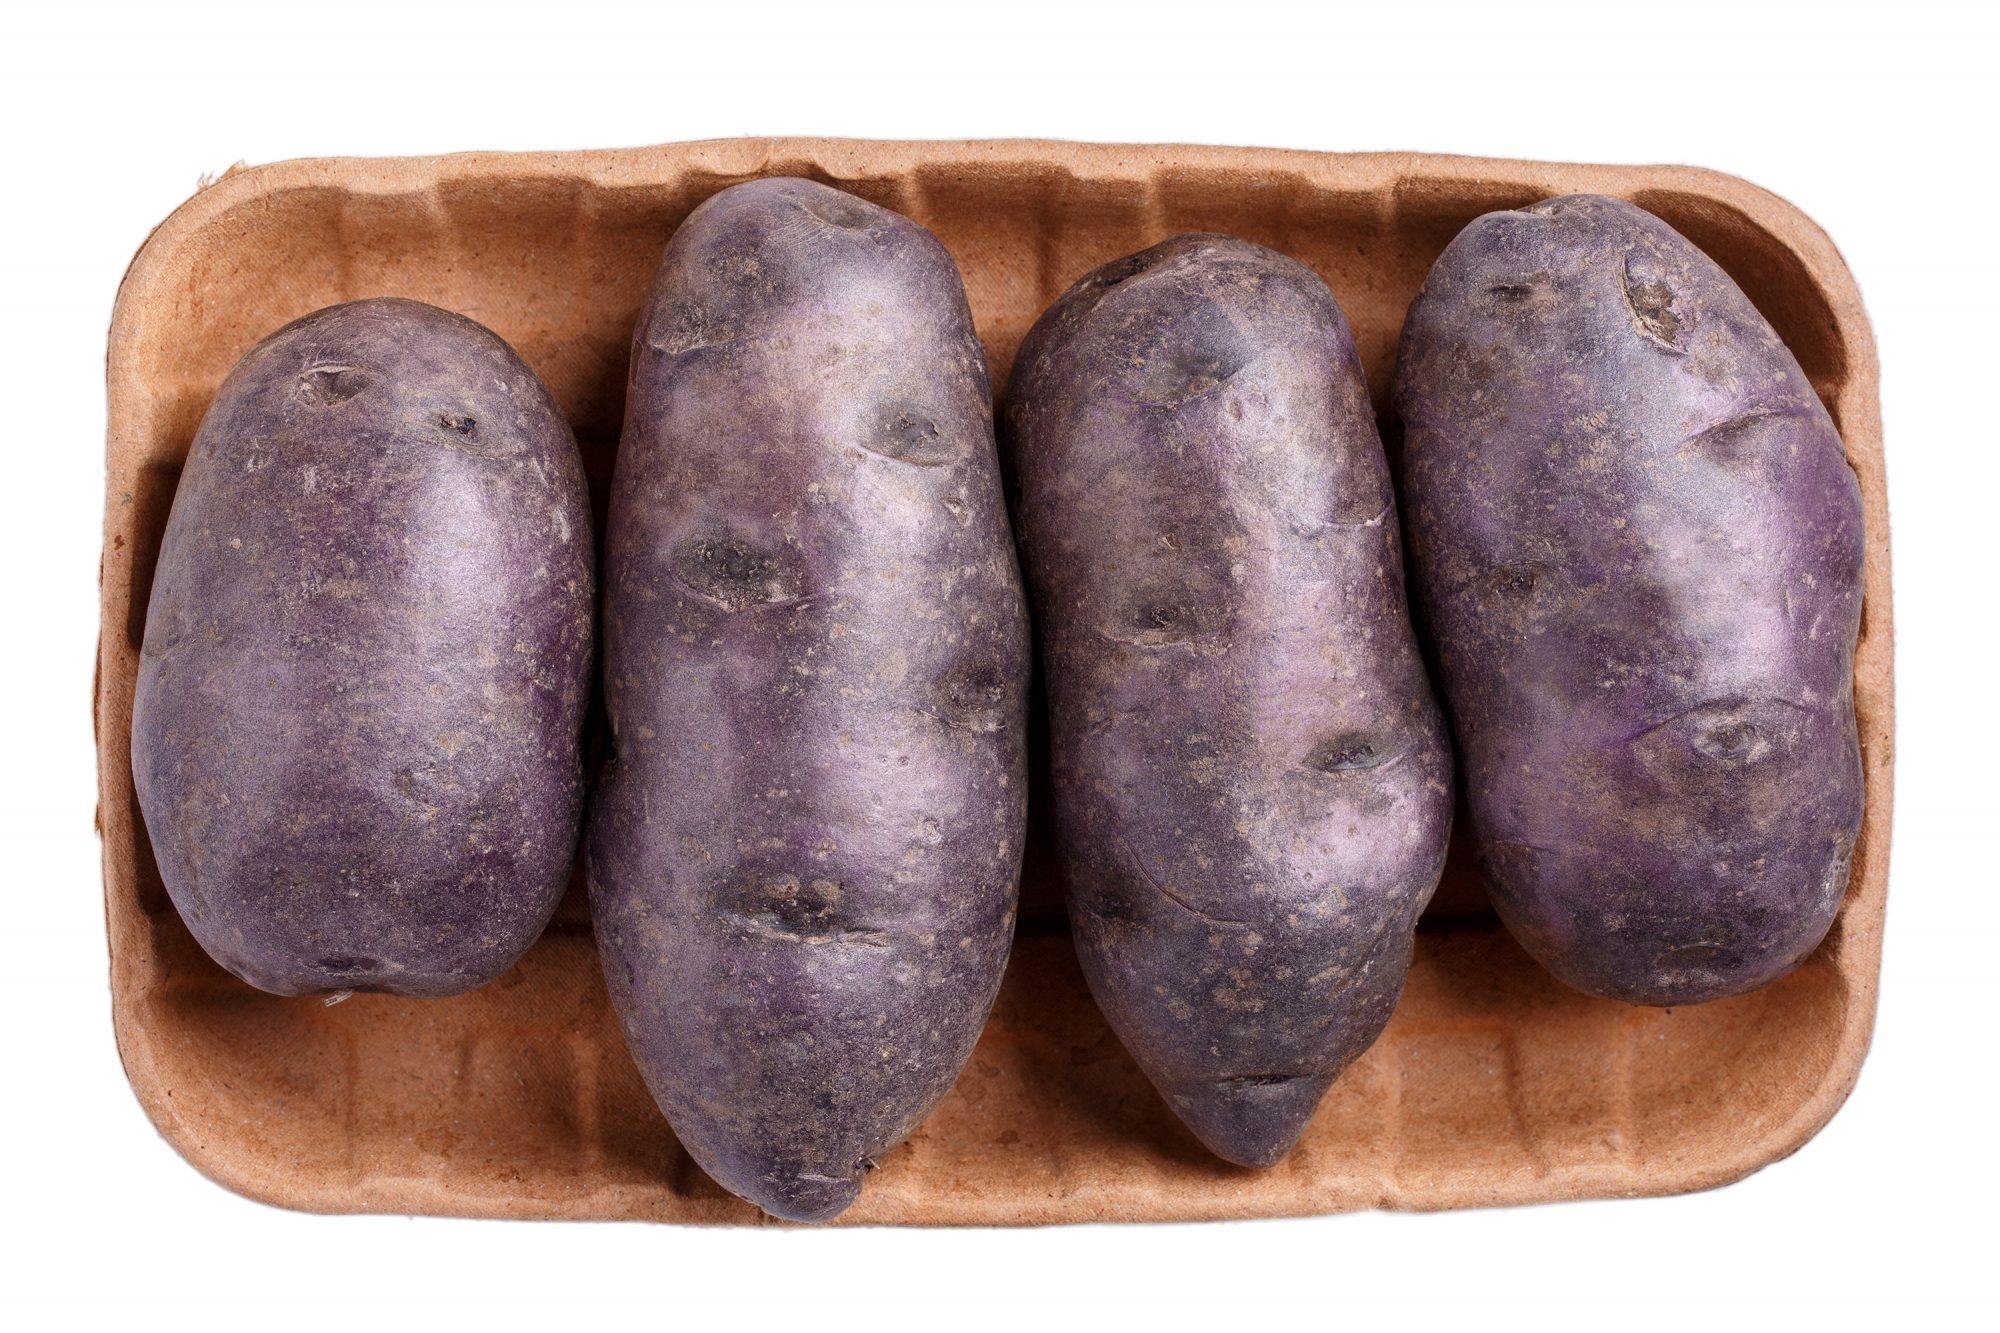 Raw purple potatoes on cardboard food tray isolated on white background. Top view.